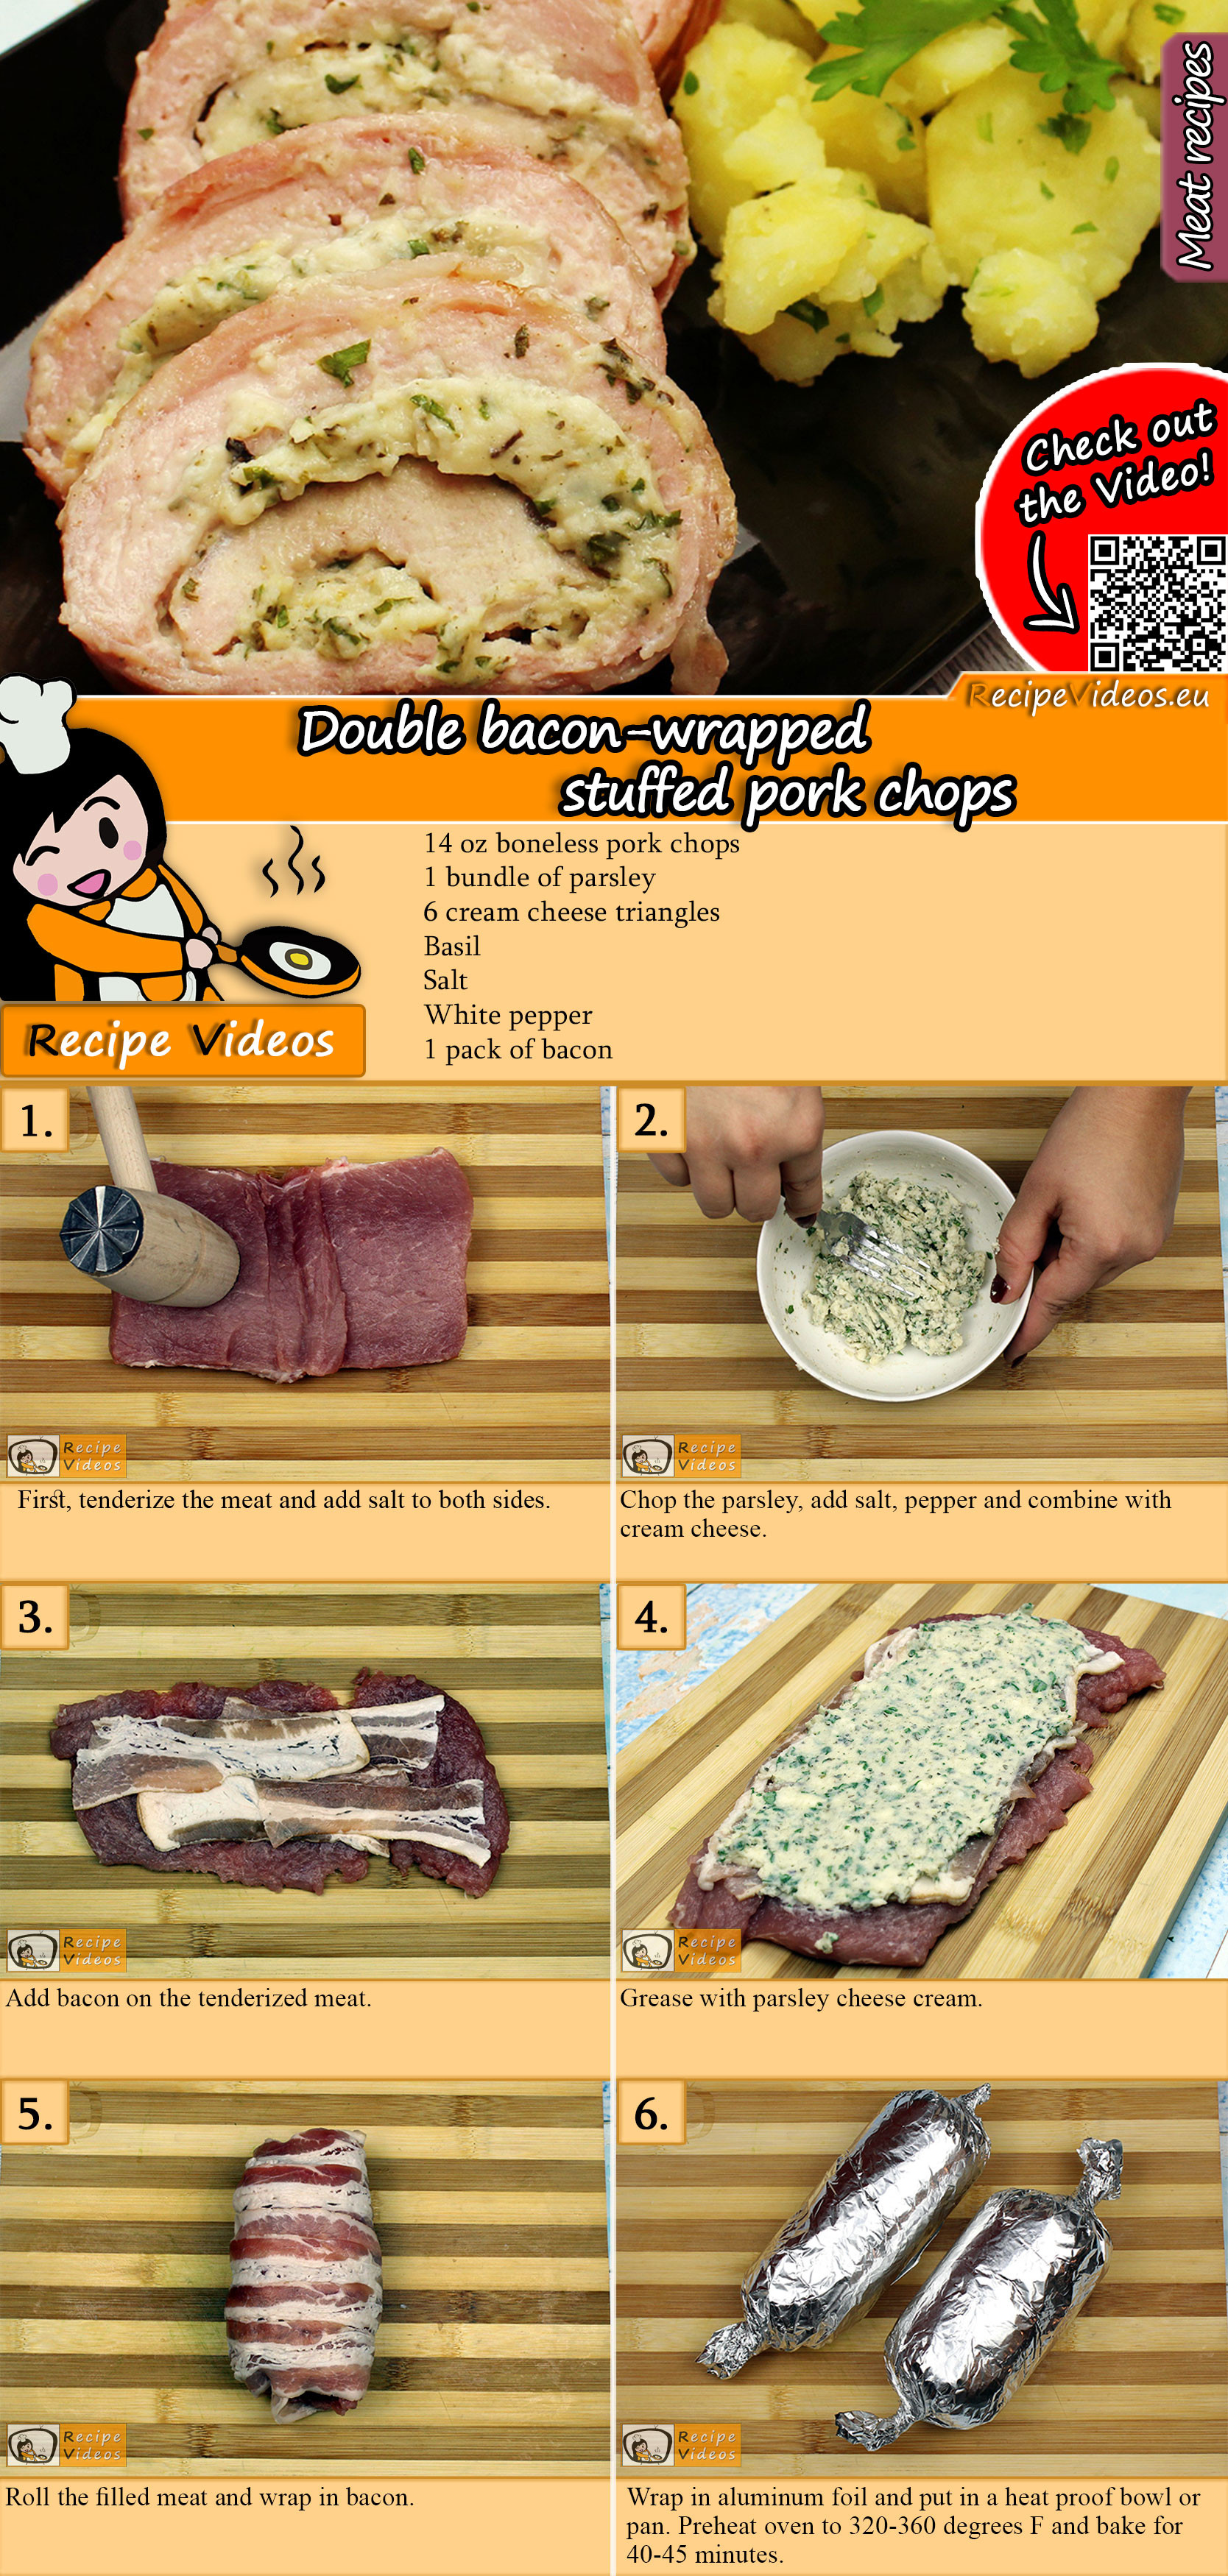 Double bacon-wrapped stuffed pork chops recipe with video